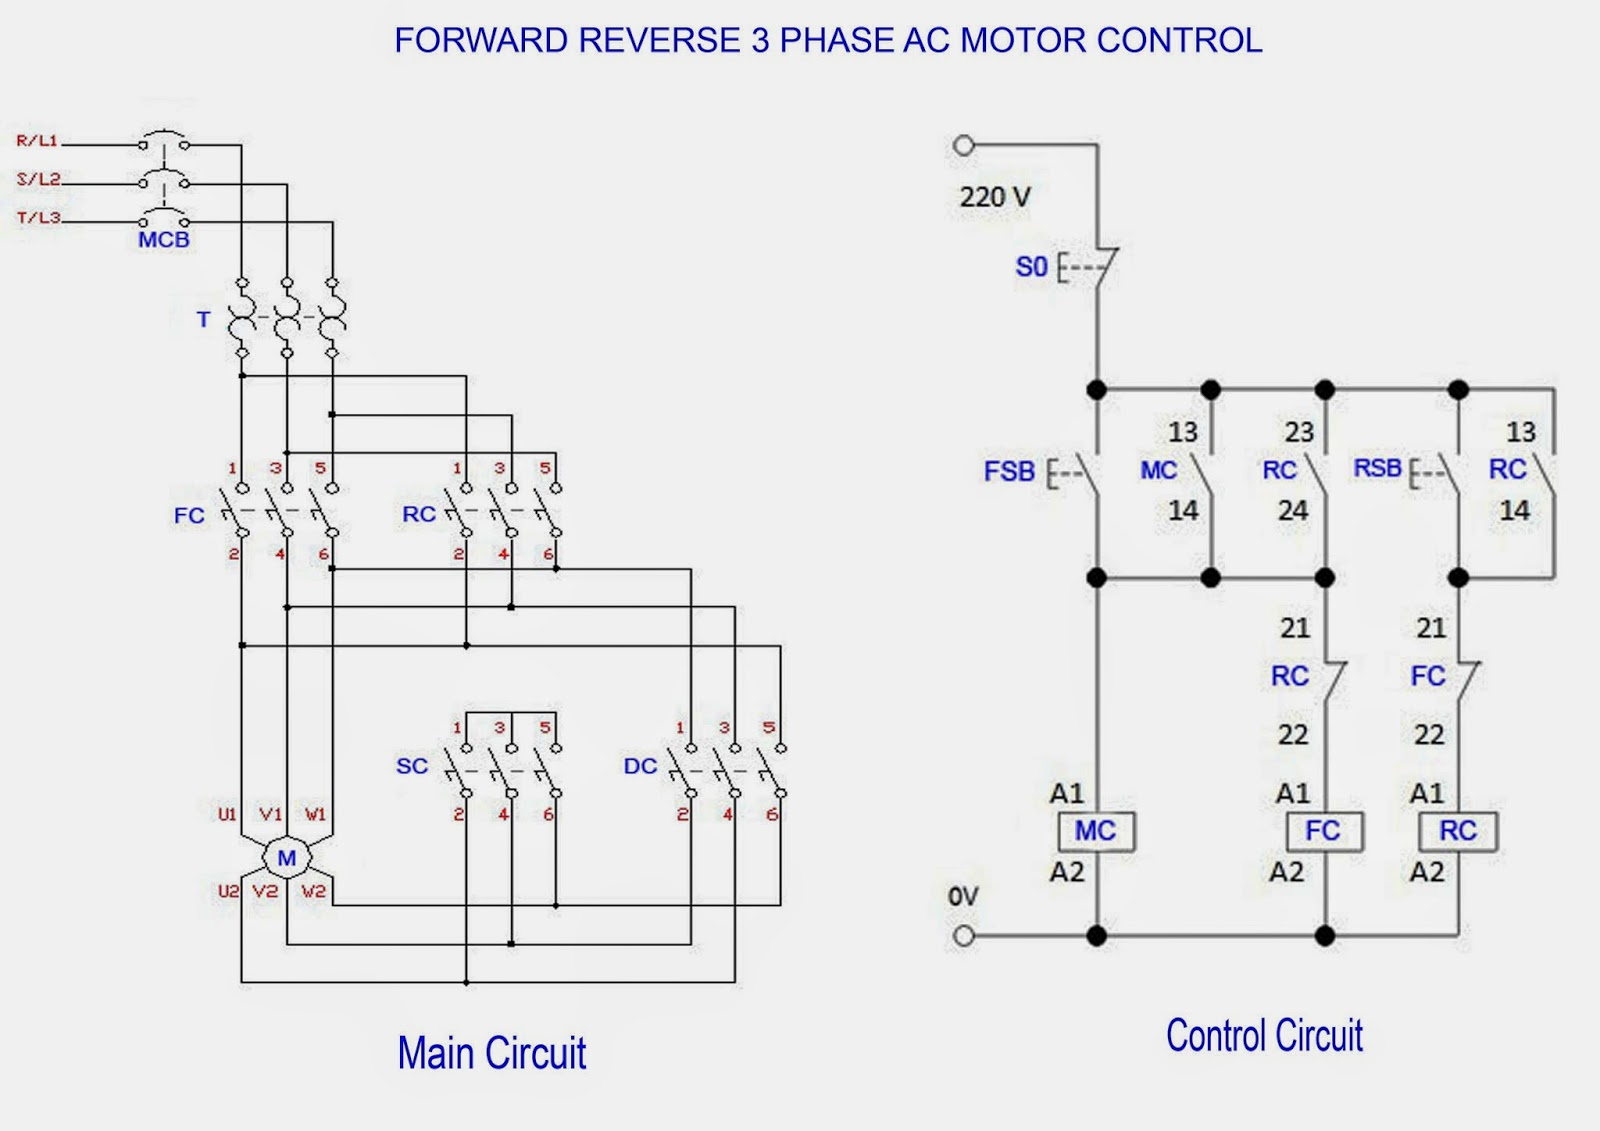 Wiring Contactors Diagram likewise Iec Contactor Wiring Diagram also Packard C230b Wiring Diagram additionally Contactor Wiring Diagram also How Construct Wiring Diagrams. on 3 pole lighting contactor wiring diagram